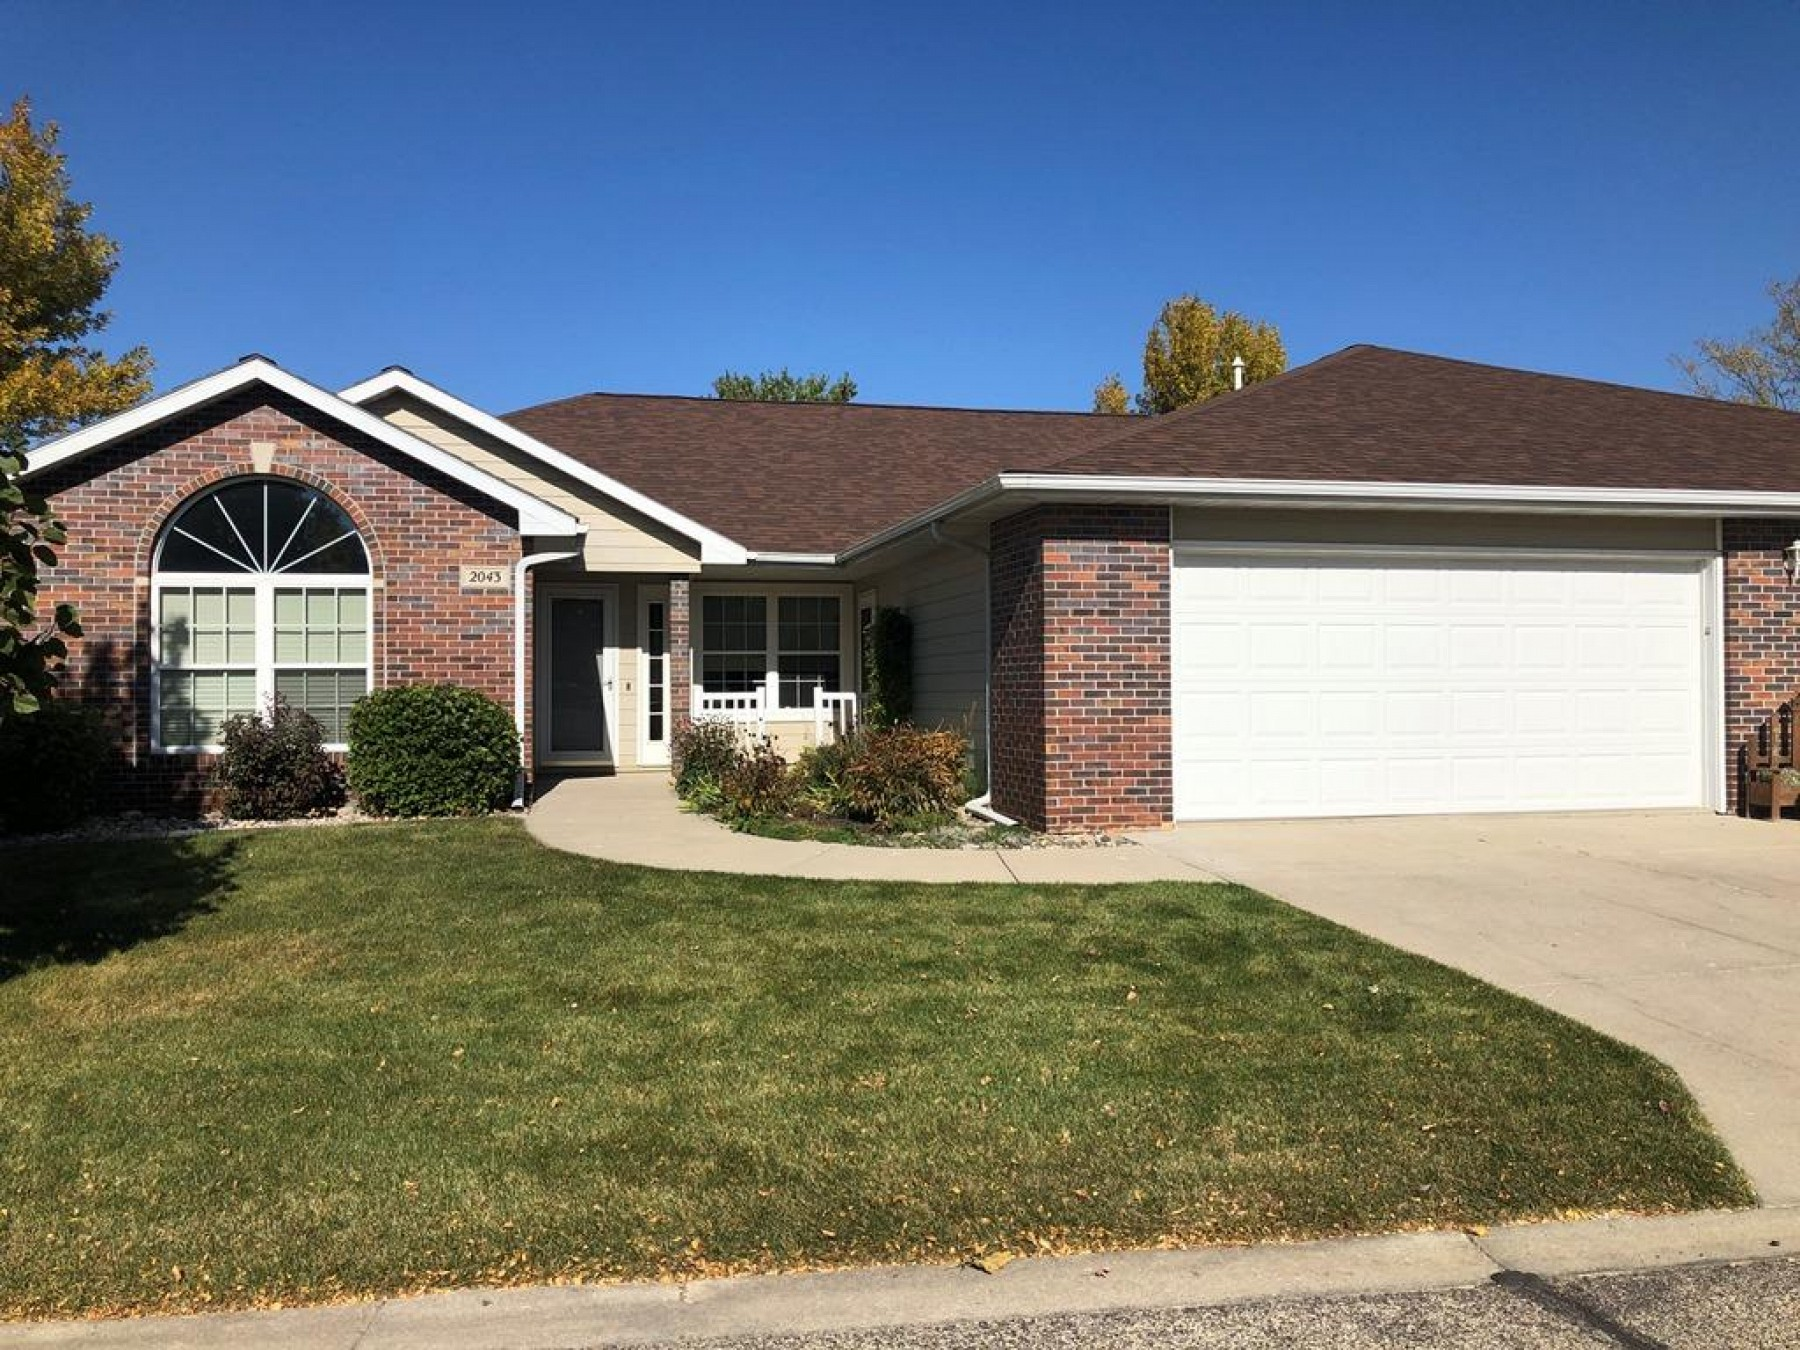 2043 Monarch Lane, Brookings, SD 57006